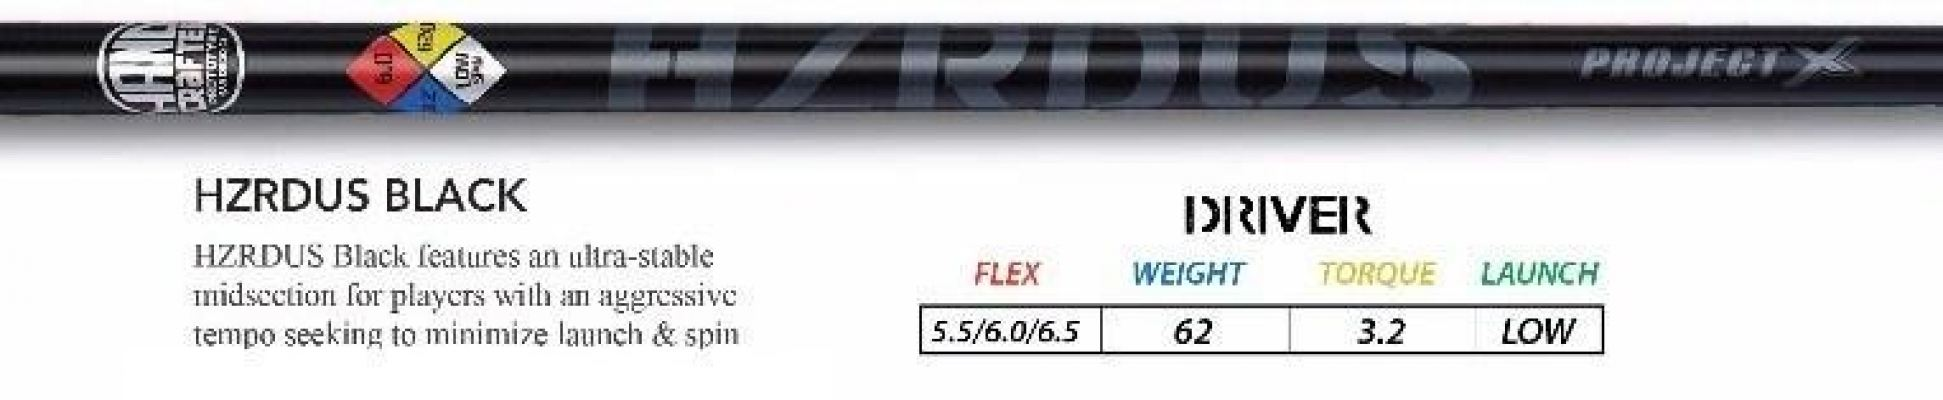 ProjectX HZRDUS Black Driver Golf Shaft